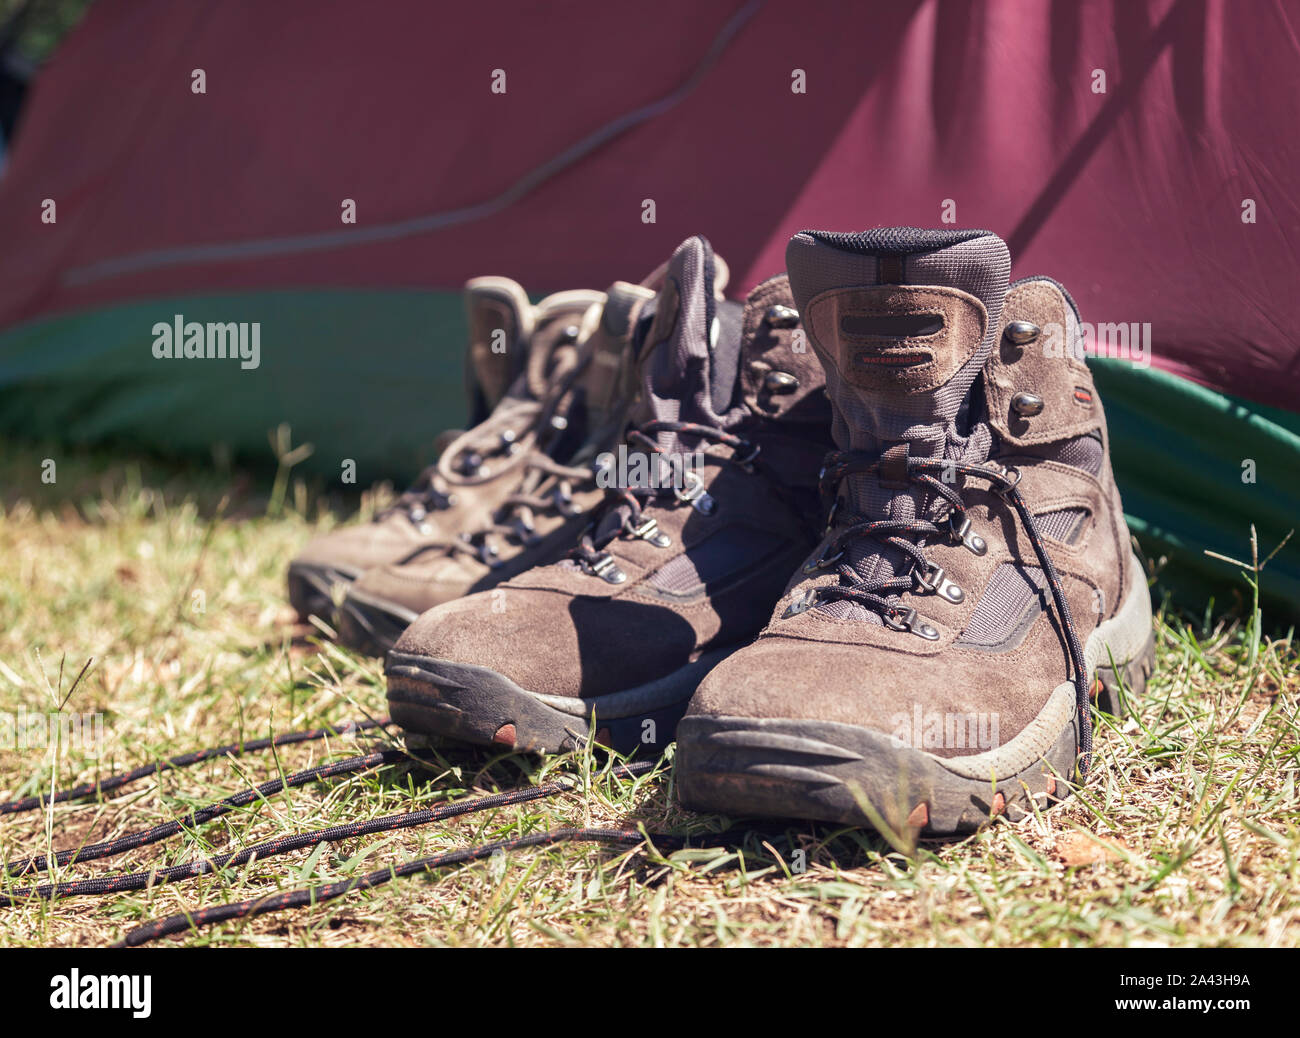 Traveling Shoes Stockfotos & Traveling Shoes Bilder Alamy